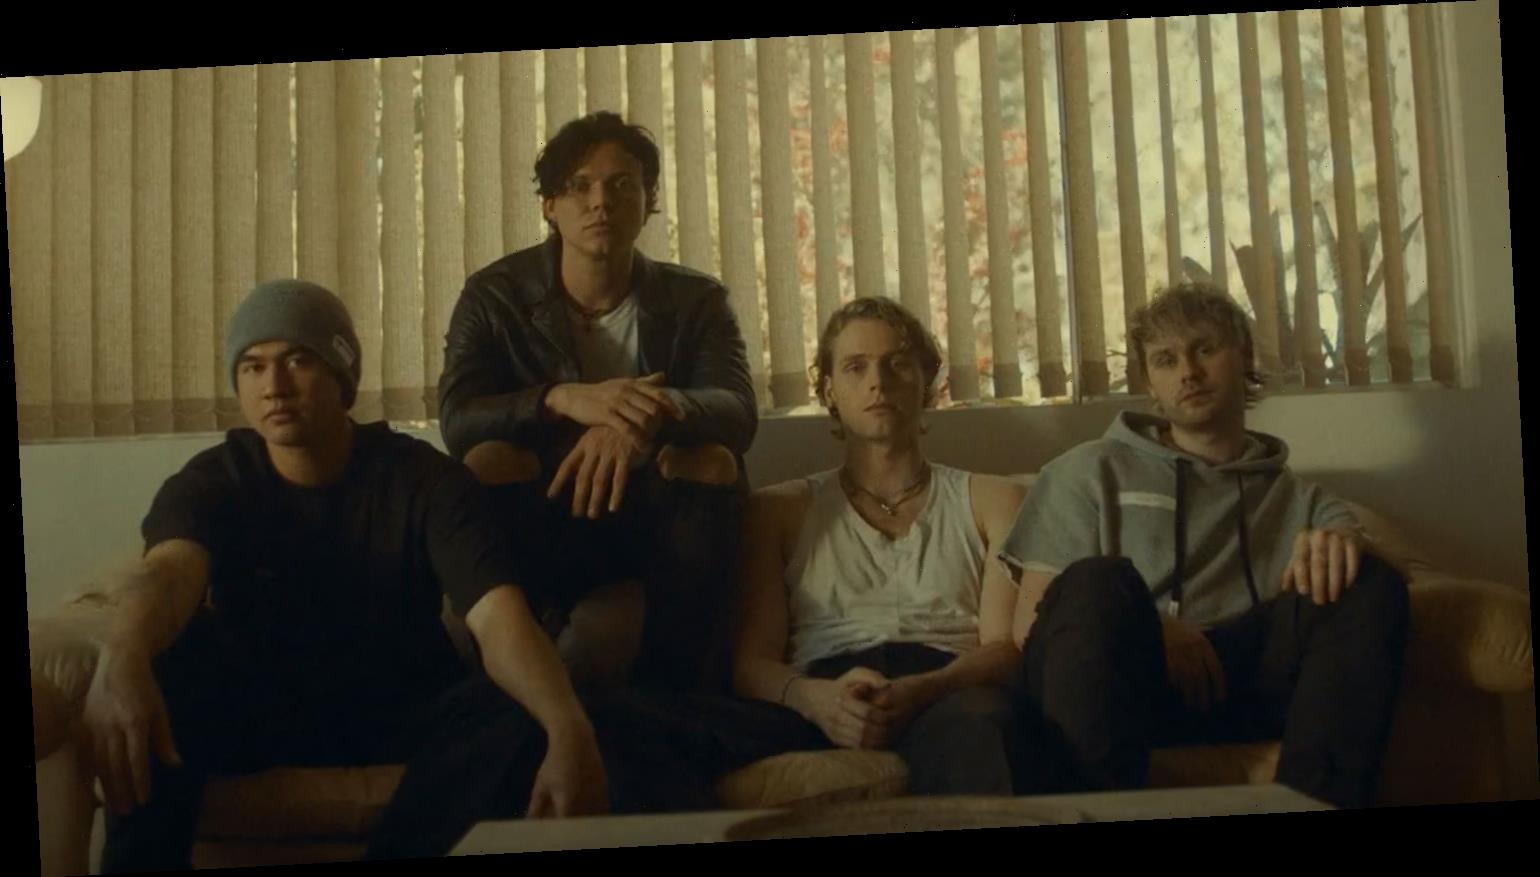 5 Seconds of Summer Go Back to Their Roots in 'Old Me' Music Video – Watch!